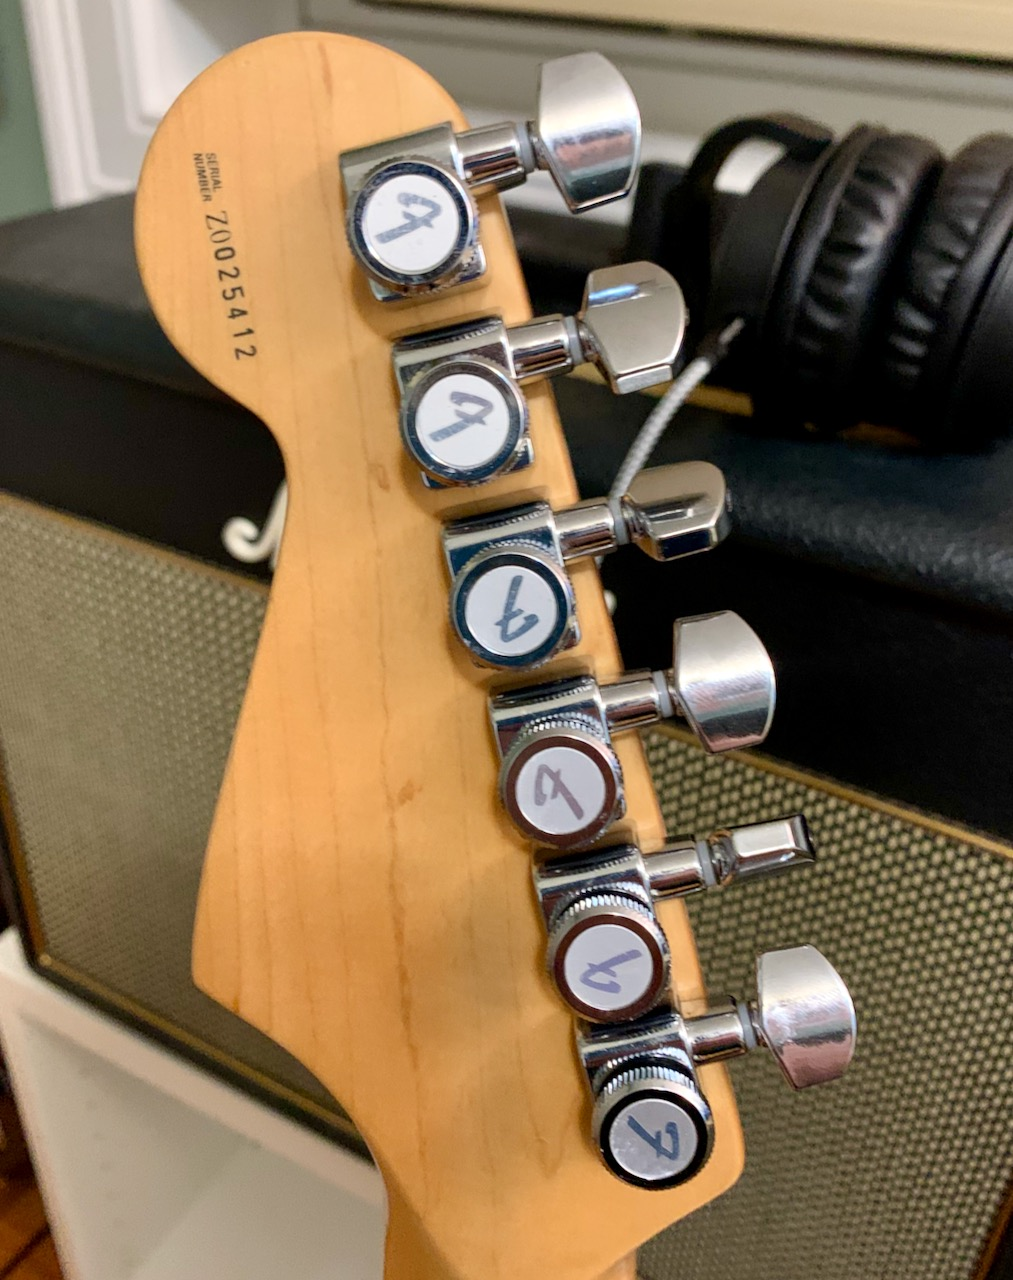 Picture of the back of the headstock of the guitar with locking tuners